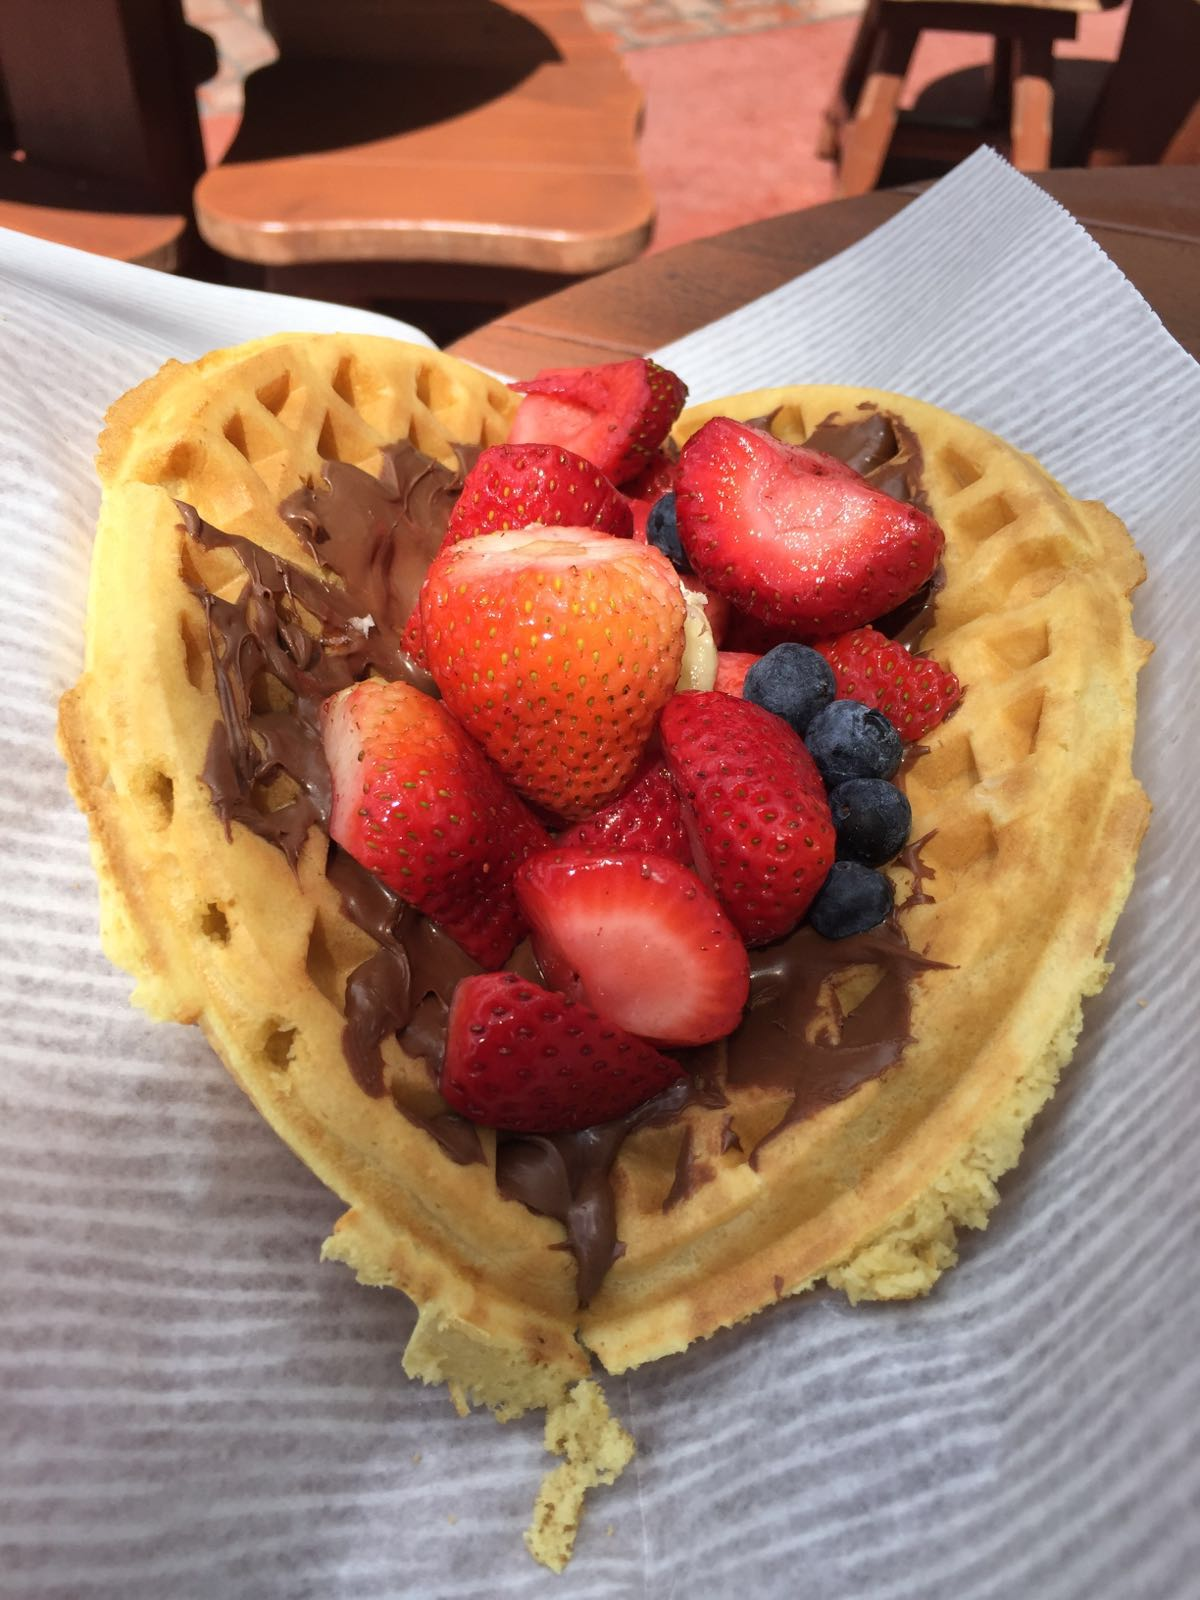 Nutella Waffle Sandwich with fresh fruit